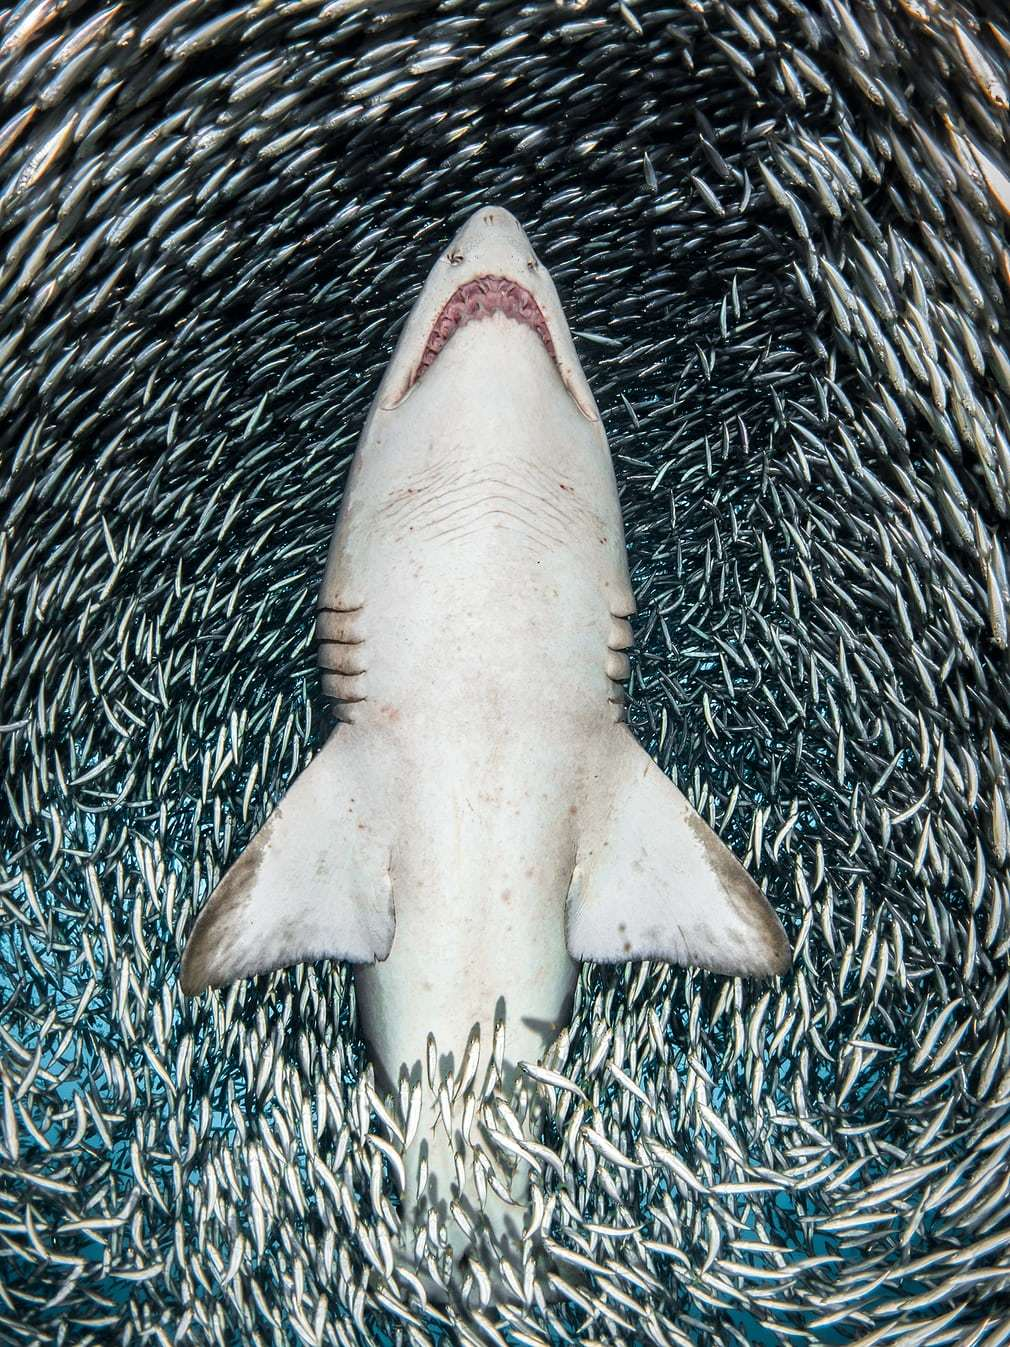 A sand tiger shark surrounded by tiny bait fish